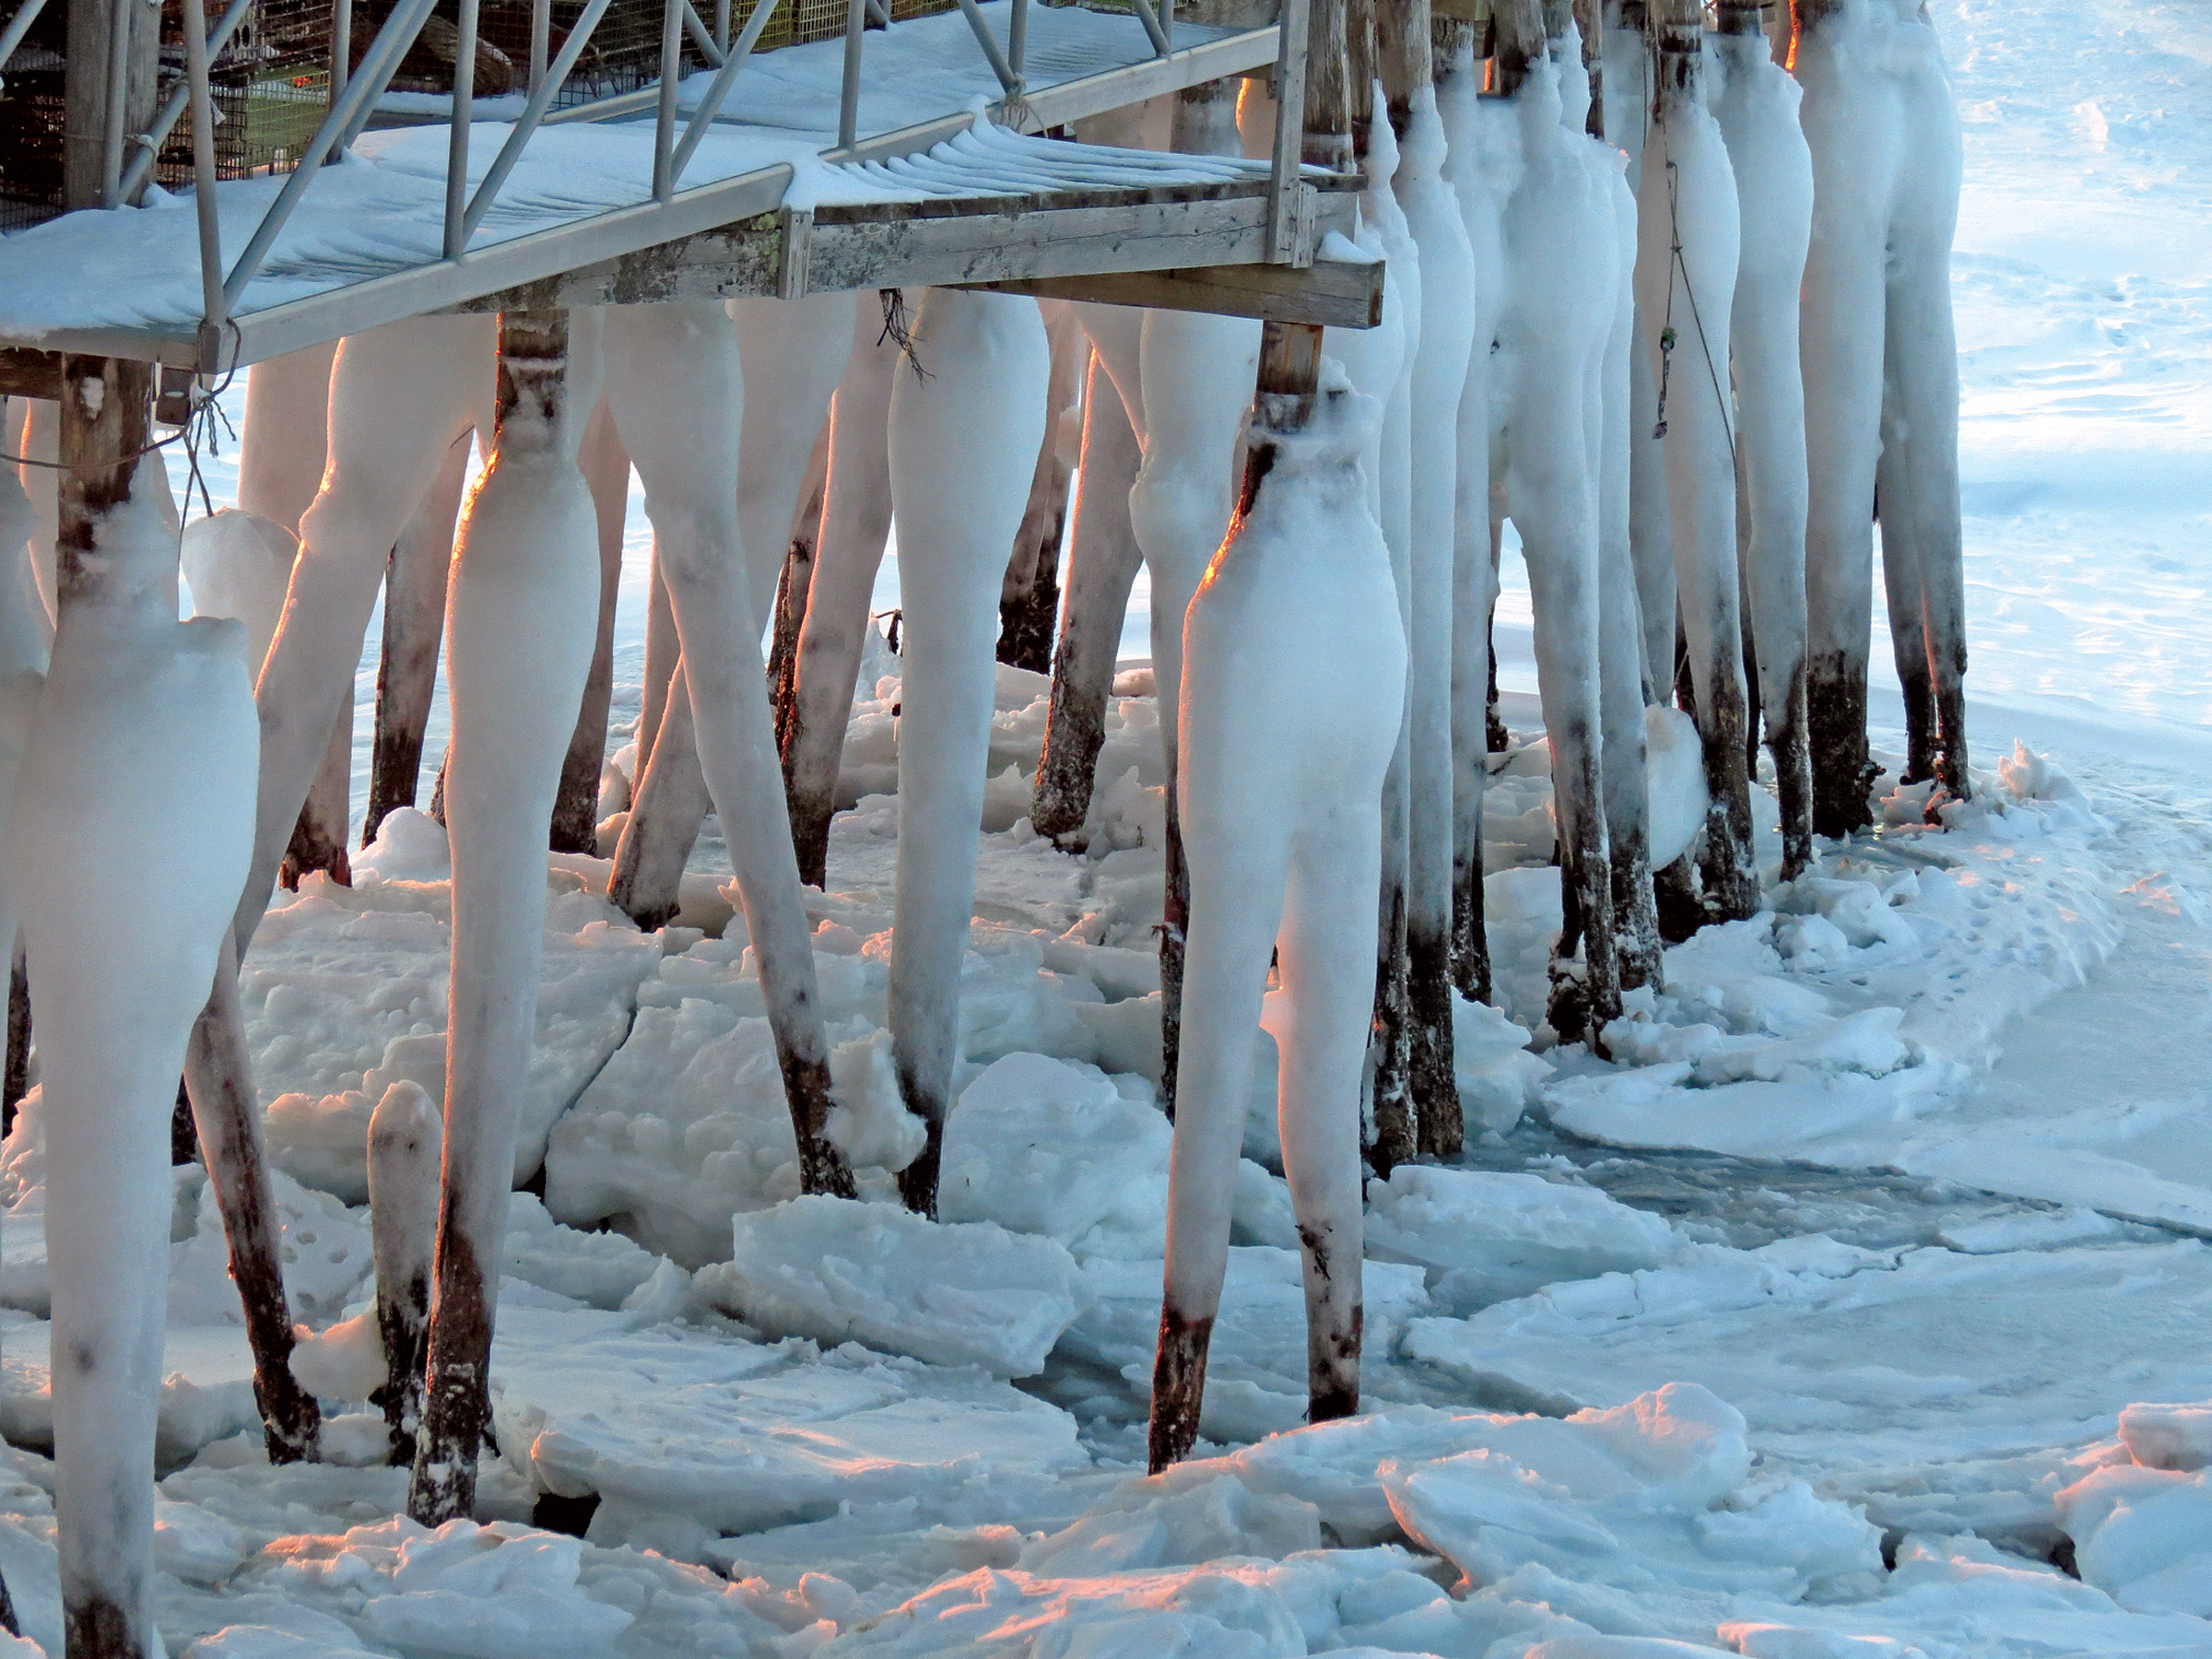 After a while the formations of ice on the pilings of TLC wharf began to look to me like human legs wearing white long-johns.  (Diane Cowan photo)